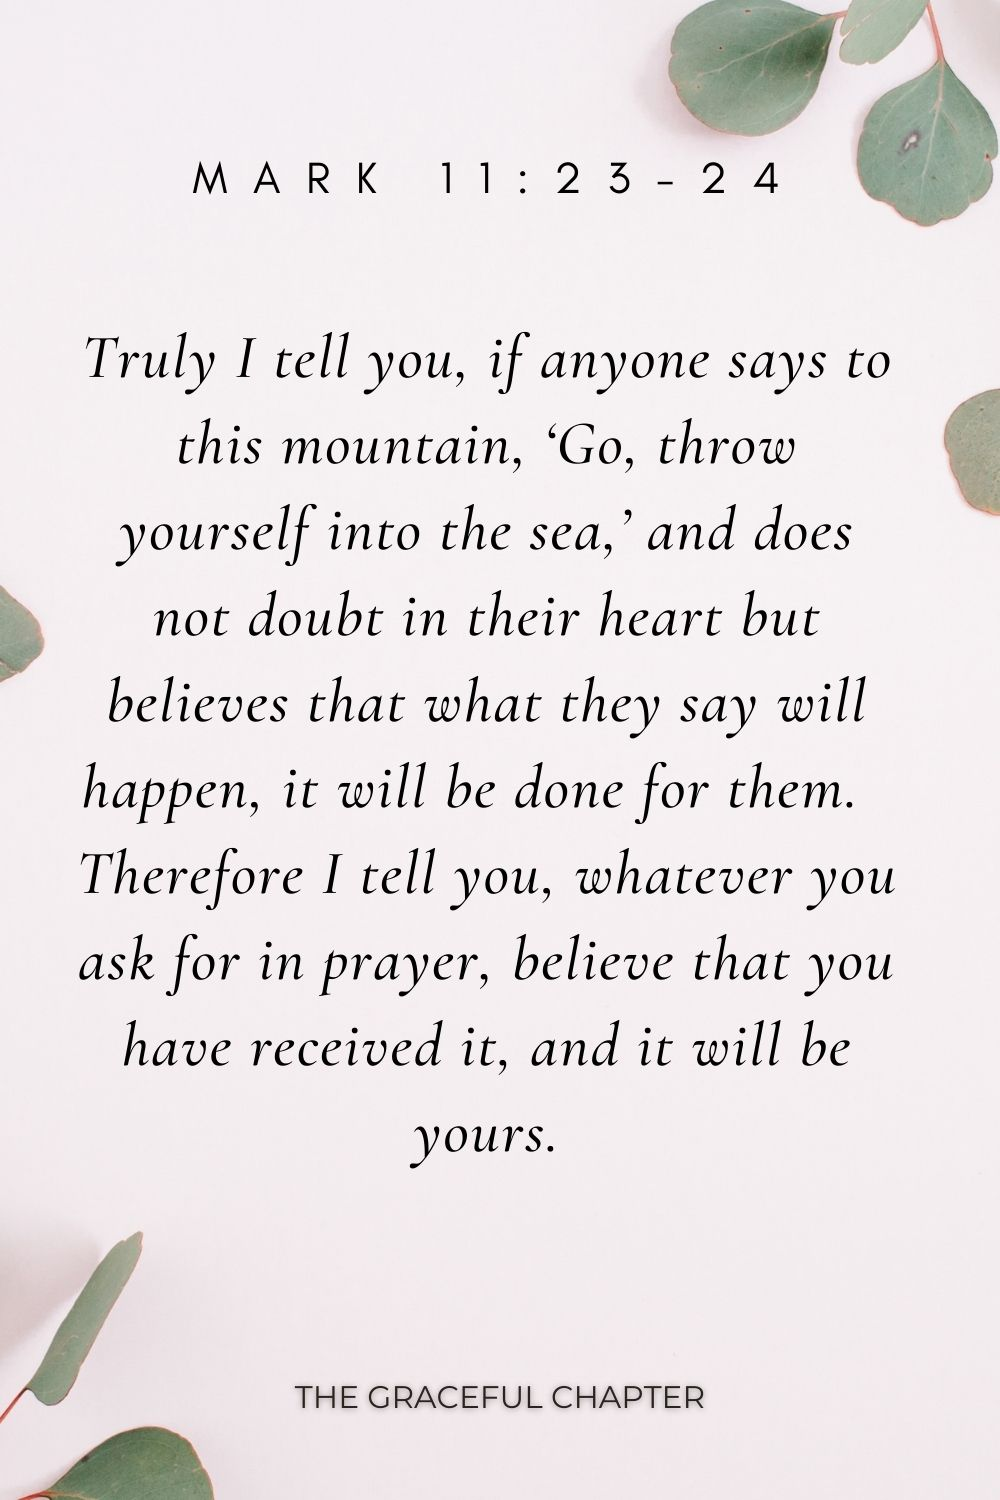 Truly I tell you, if anyone says to this mountain, 'Go, throw yourself into the sea,' and does not doubt in their heart but believes that what they say will happen, it will be done for them.  Therefore I tell you, whatever you ask for in prayer, believe that you have received it, and it will be yours. Mark 11:23-24